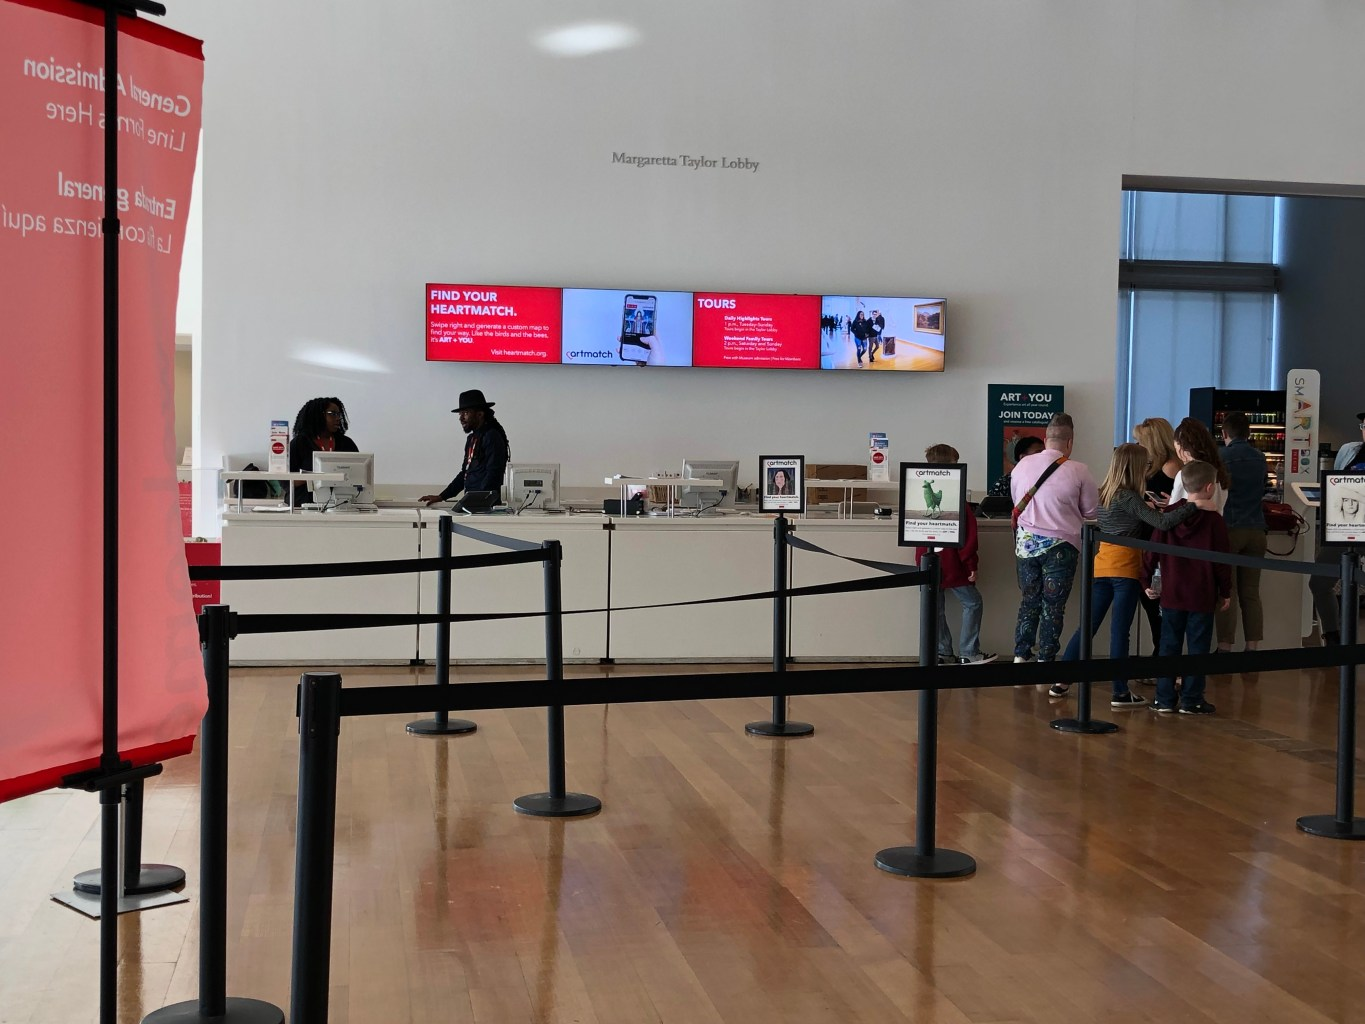 The ticket line in the lobby of the museum shows signs advertising Heartmatch on top of stanchions and on a TV screen behind the desk.